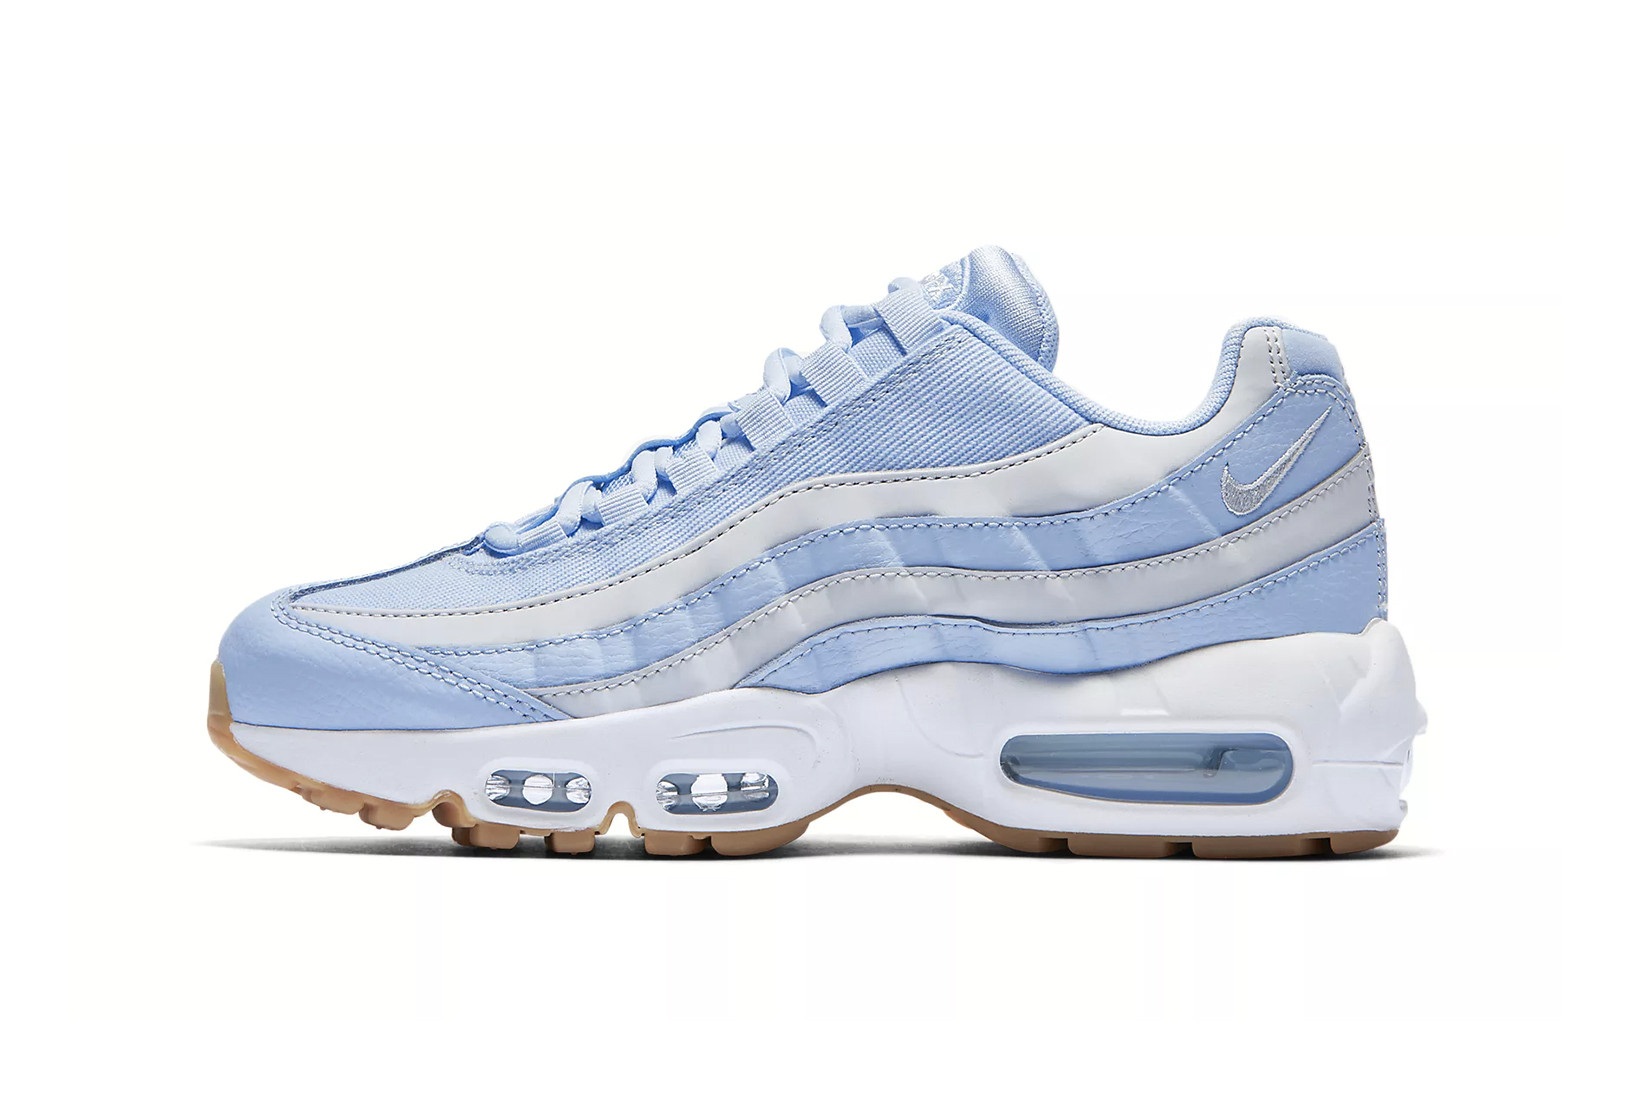 Air Max 95 in Baby Blue \